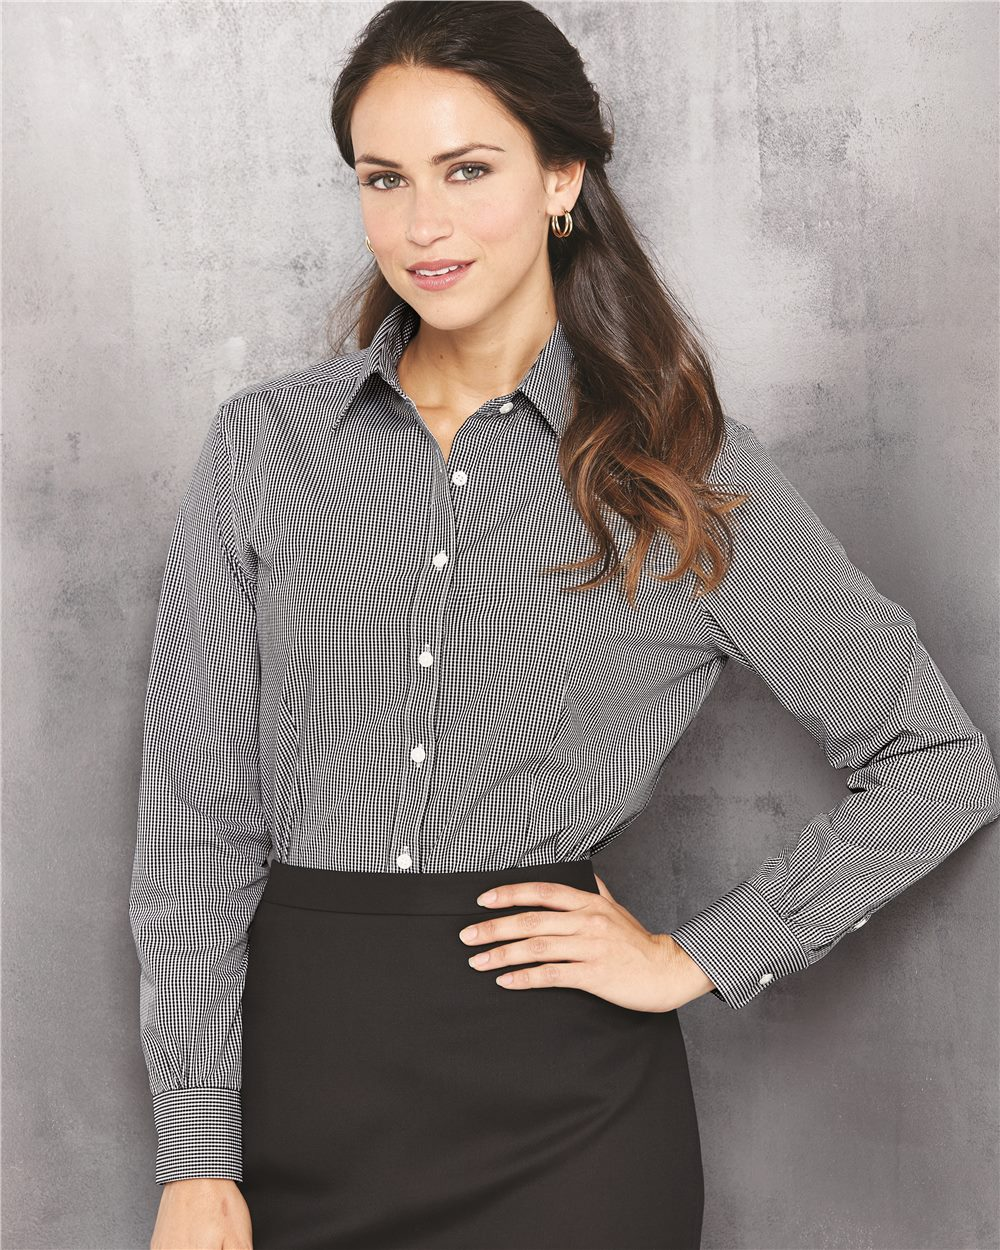 VAN HEUSEN 13V0226 - LADIES' LONG SLEEVE EASY CARE GINGHAM ...